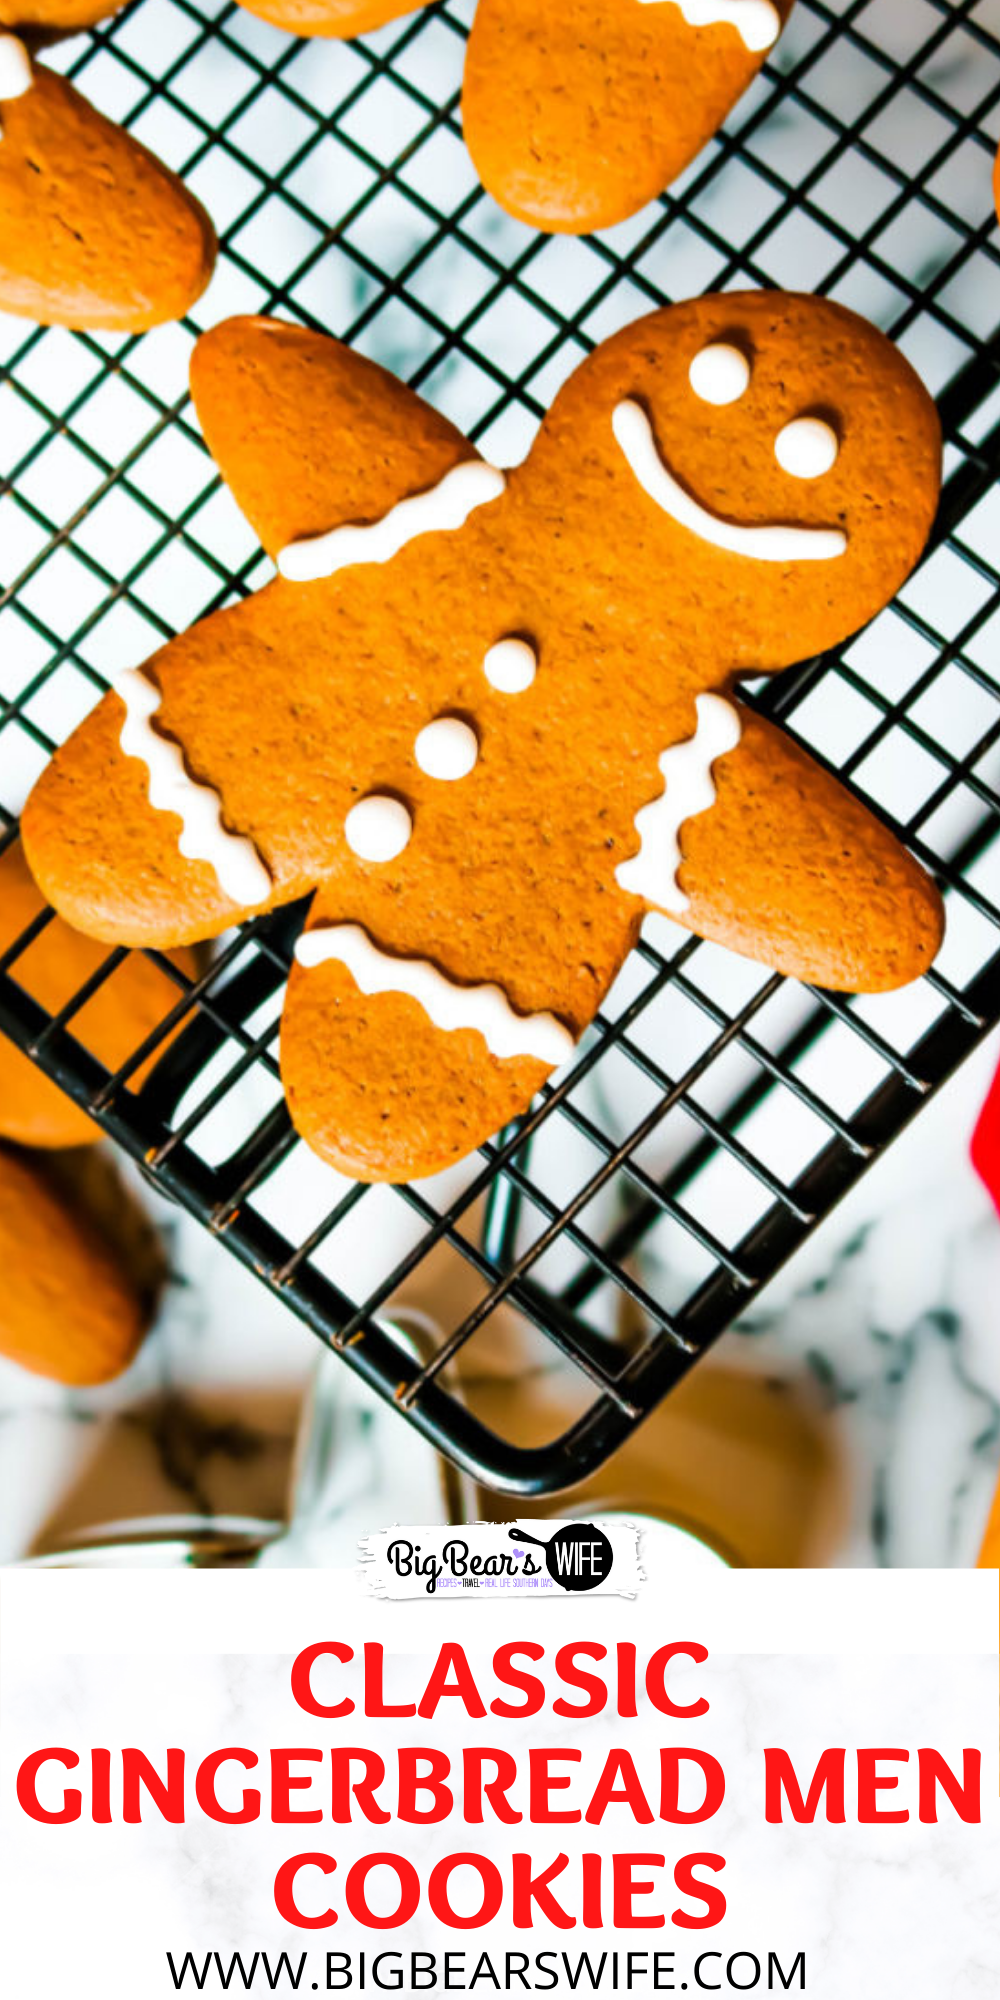 Classic Gingerbread Men Cookies are so perfect for the holidays! This gingerbread cookie dough holds up for perfectly for gingerbread cutout cookies or can be baked longer to create gingerbread men cookie ornaments for the Christmas Tree! via @bigbearswife